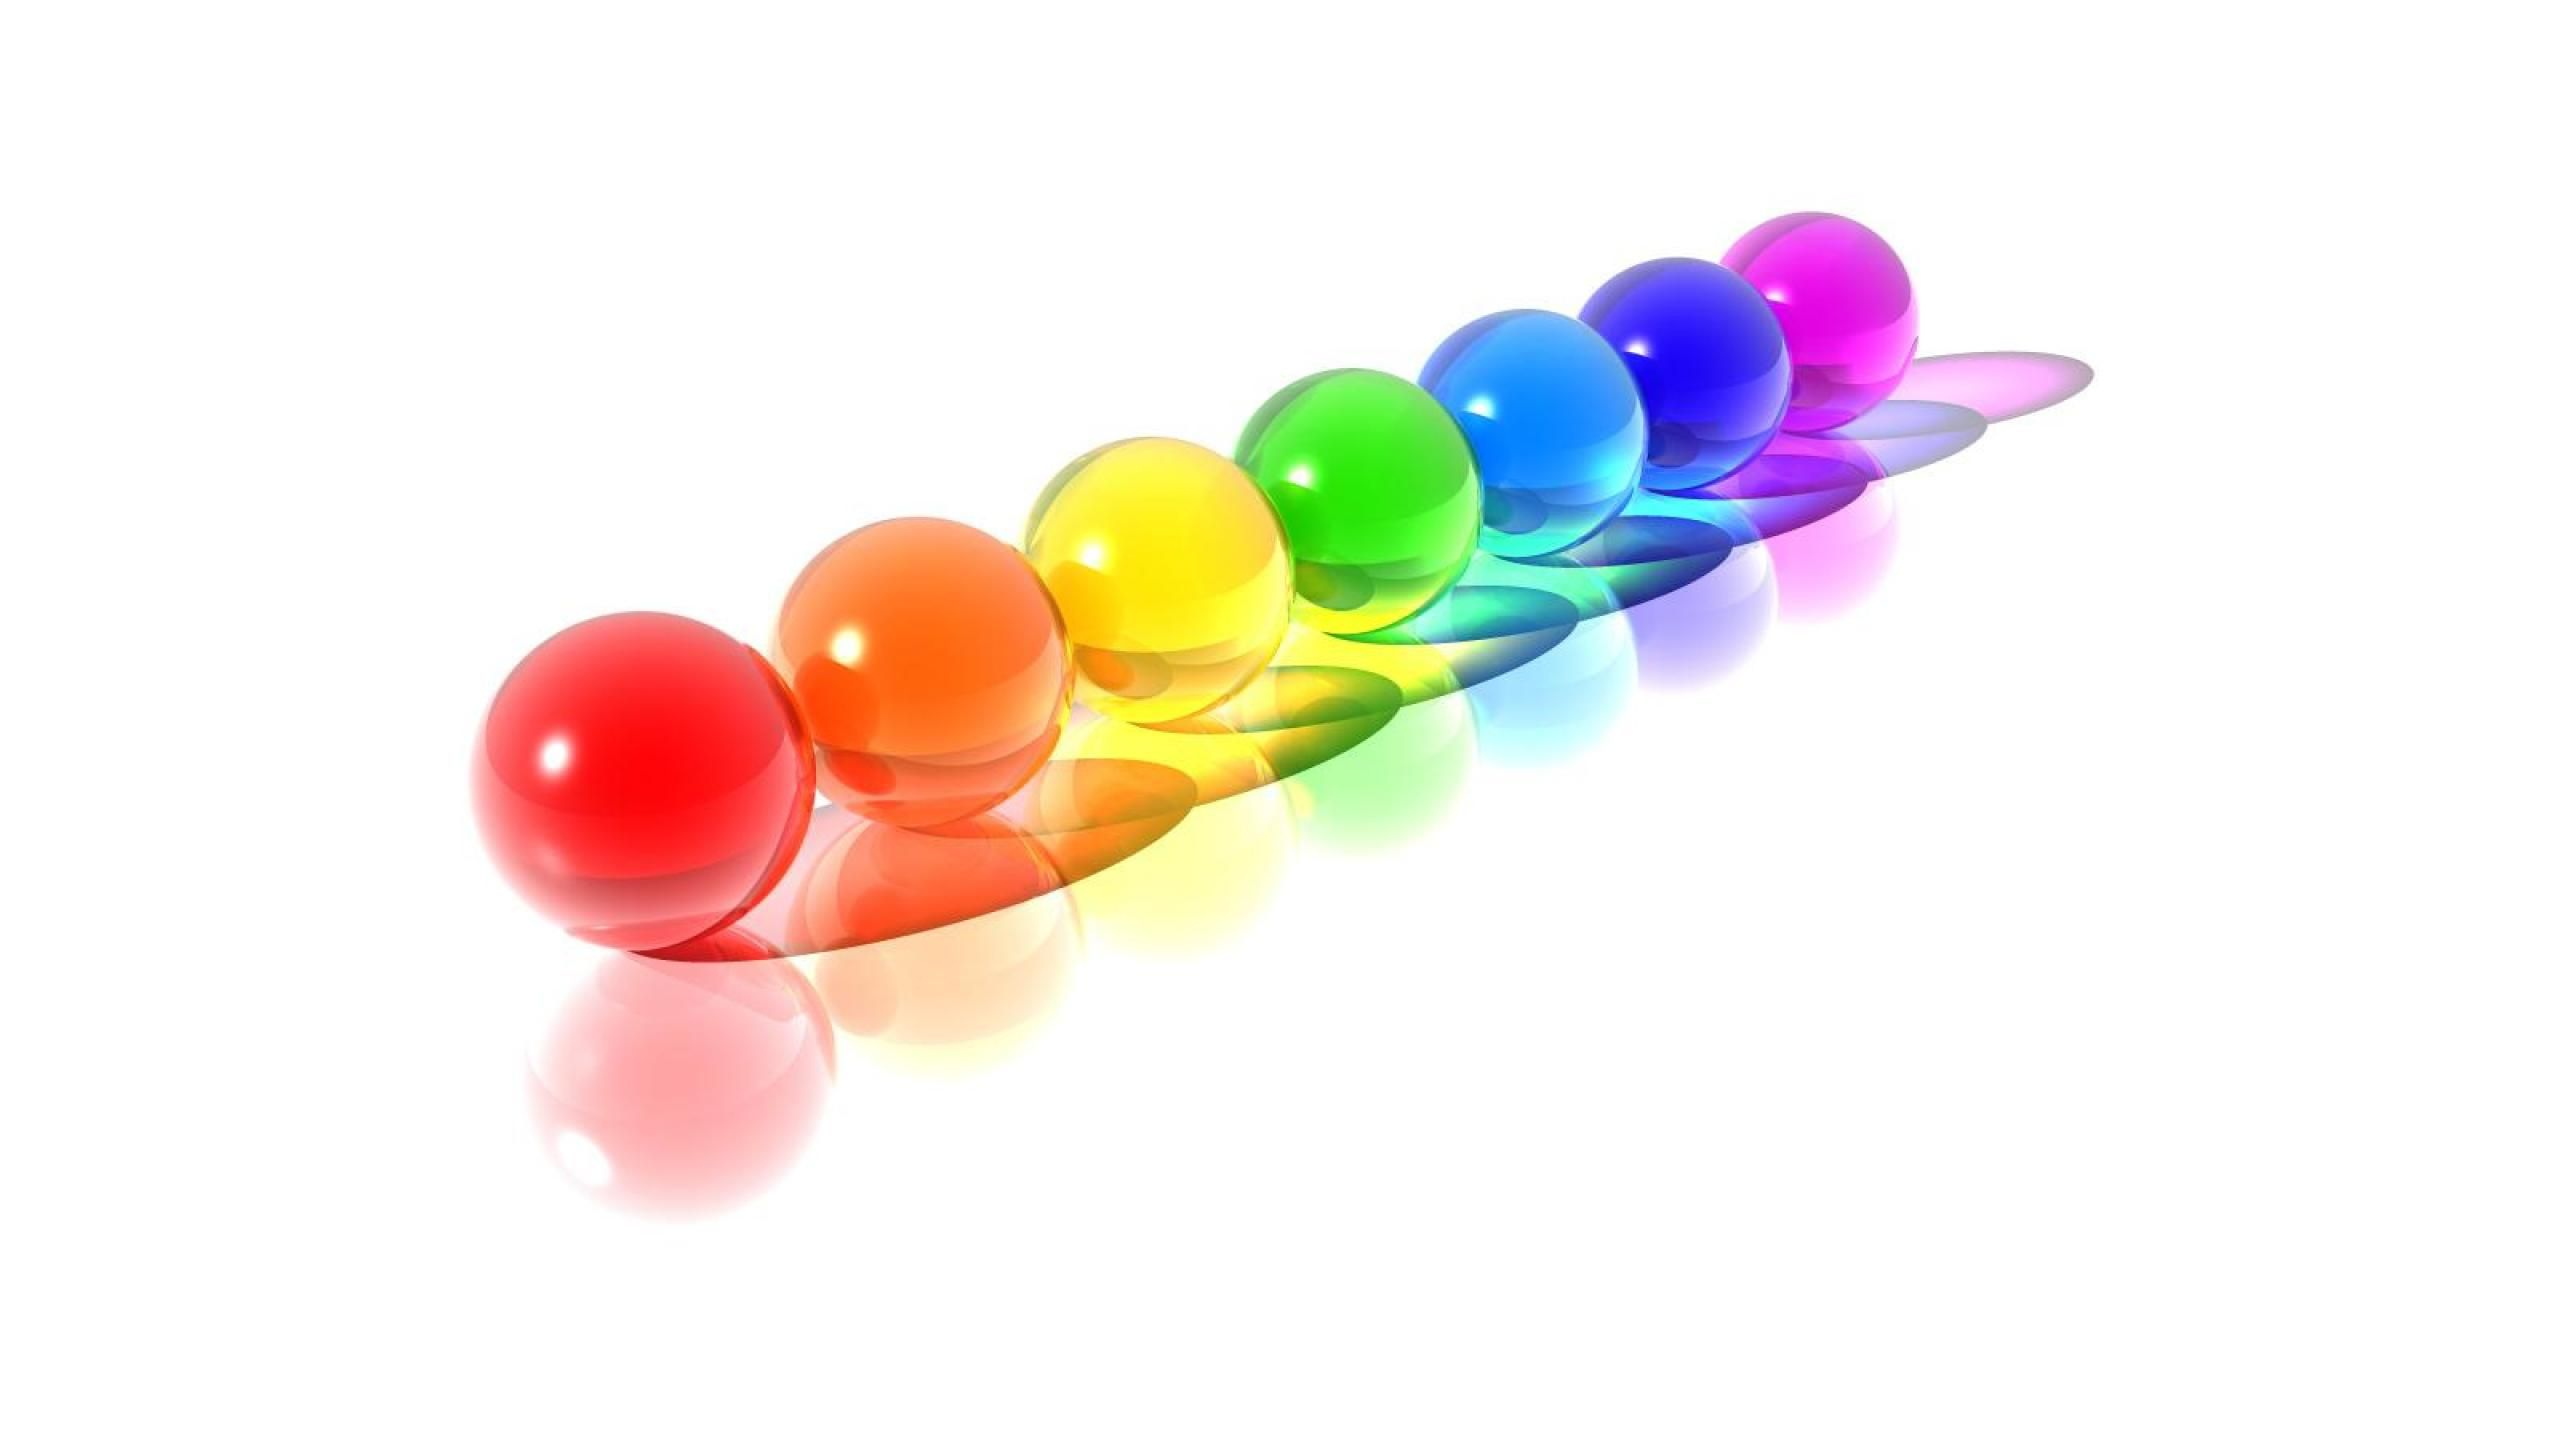 Hd Wallpaper 7 Kids Color Balls 2560x1440 See More On Classy